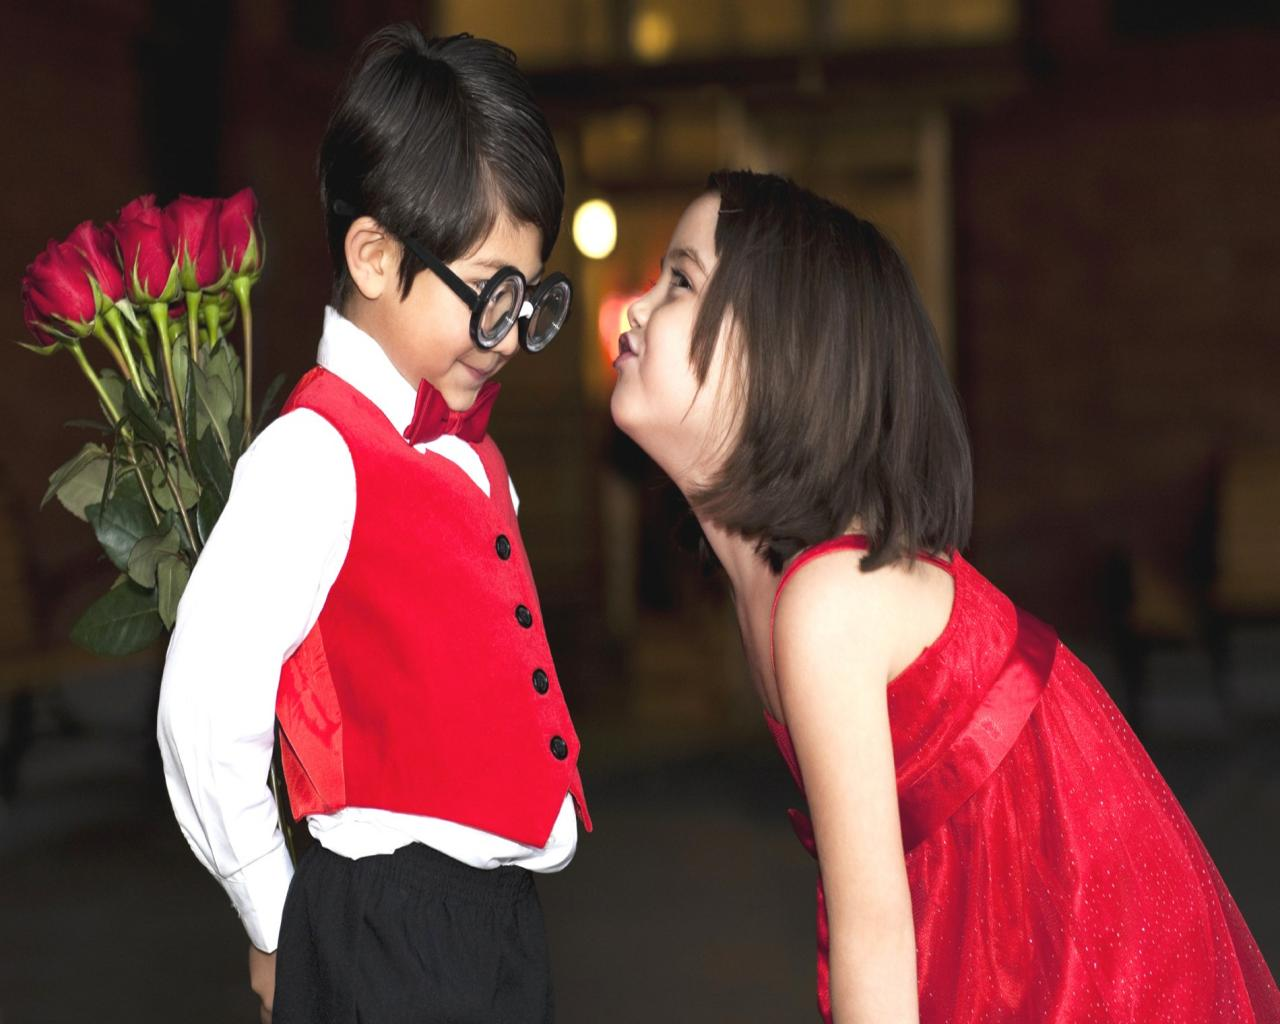 Download sweet baby couple wallpaper gallery - Couple wallpaper download ...